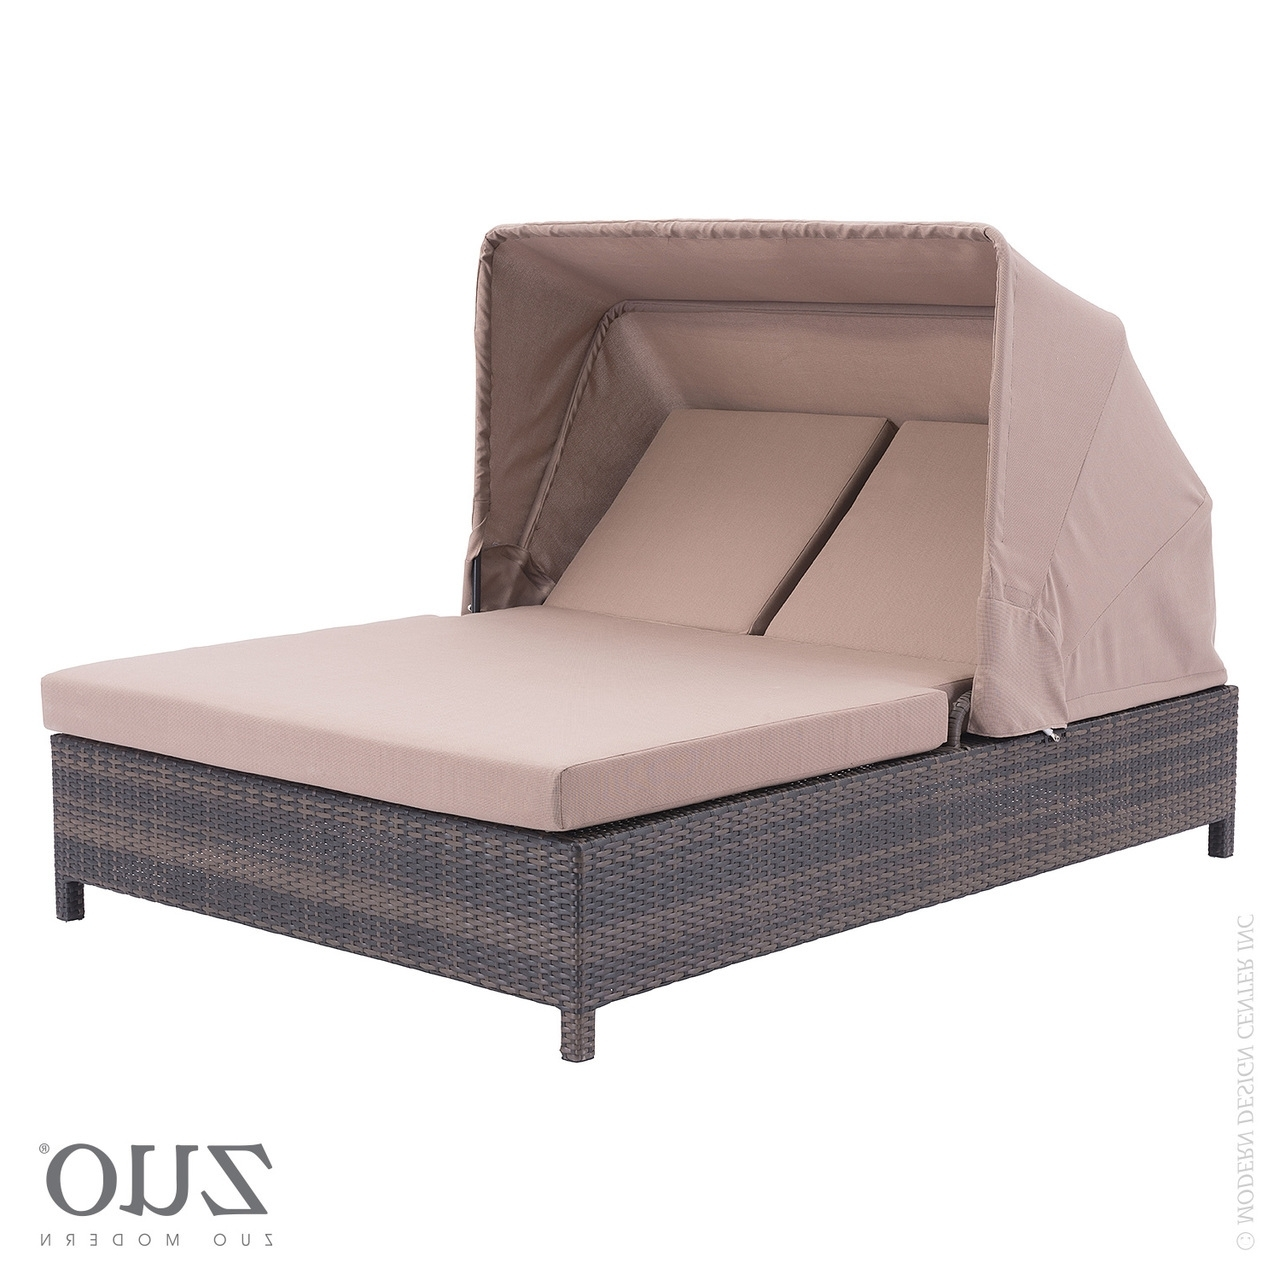 Popular Ontario Chaise Lounges In Siesta Key Double Chaise Lounge Brown –  (View 13 of 15)